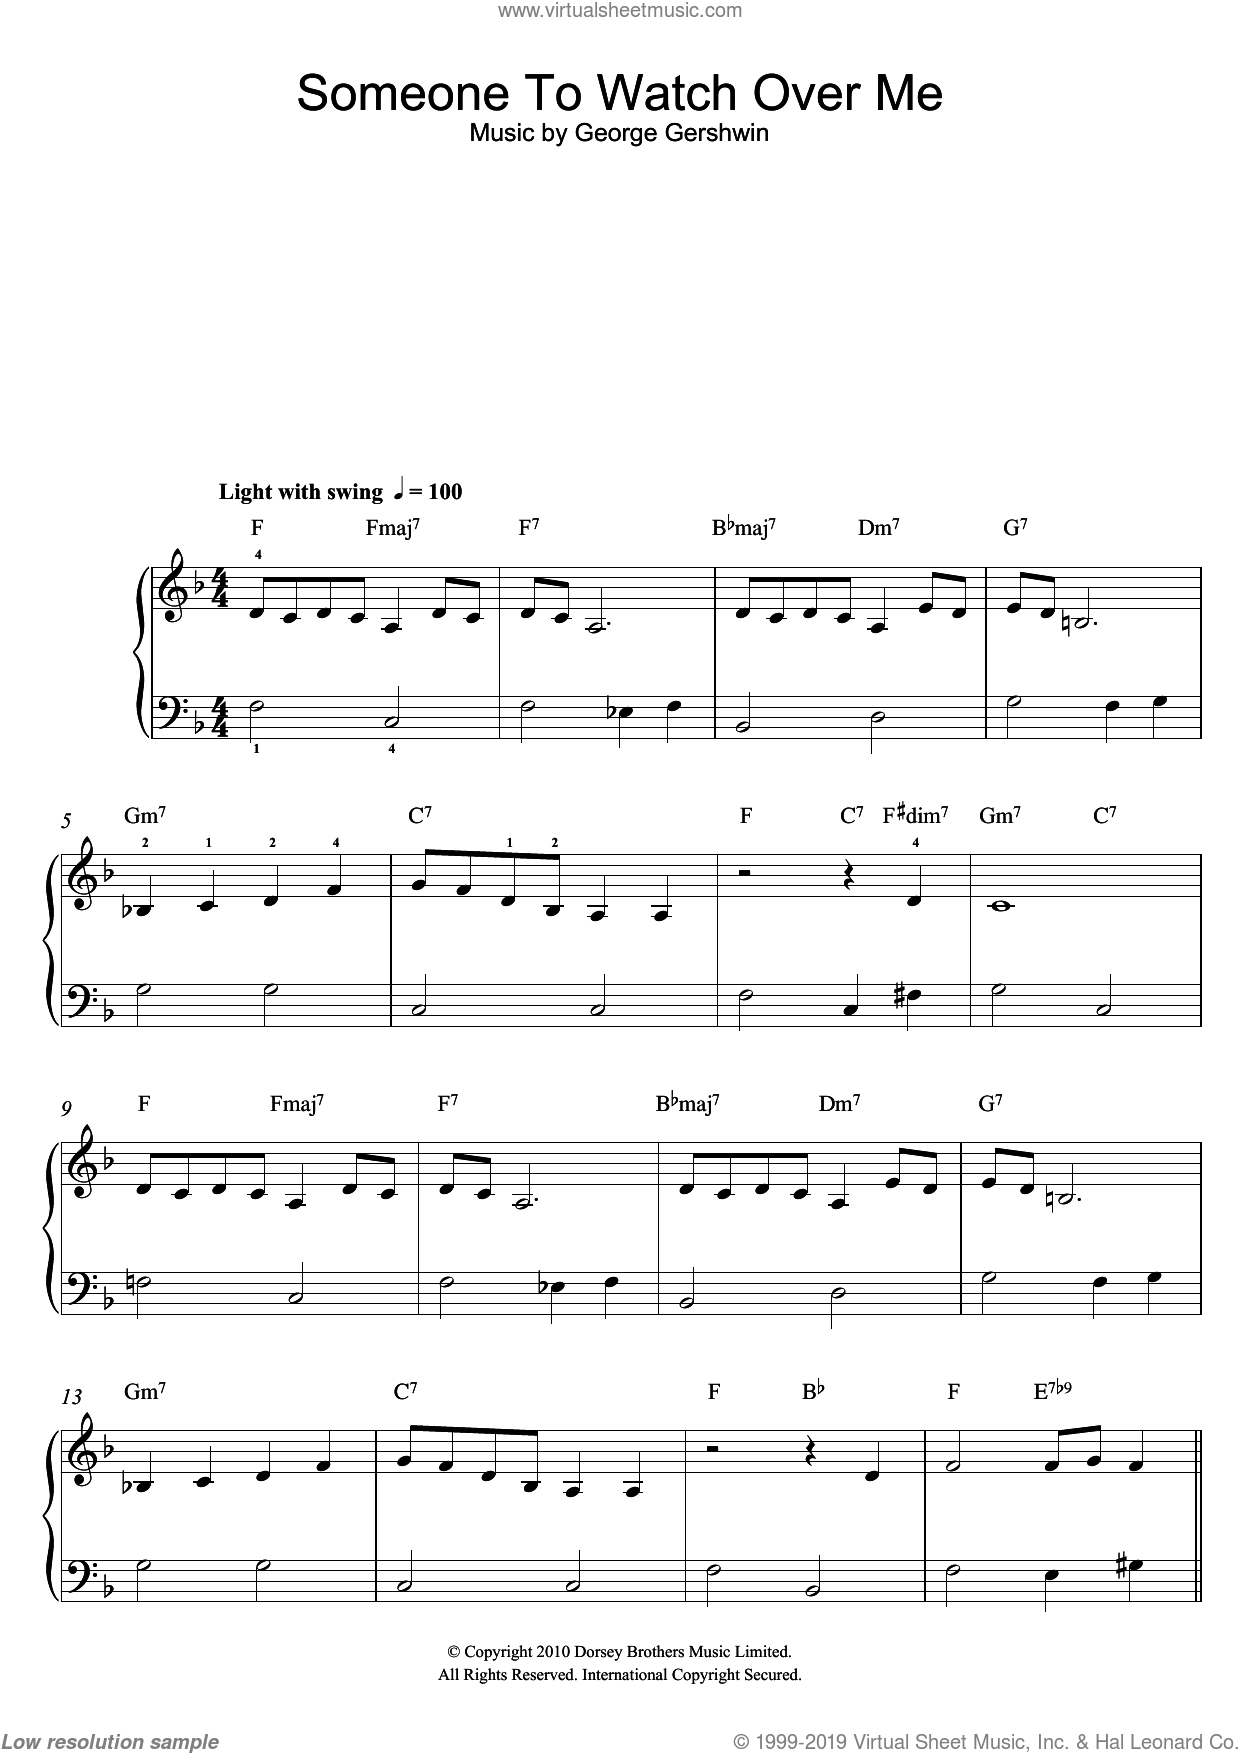 Someone To Watch Over Me sheet music for piano solo by George Gershwin